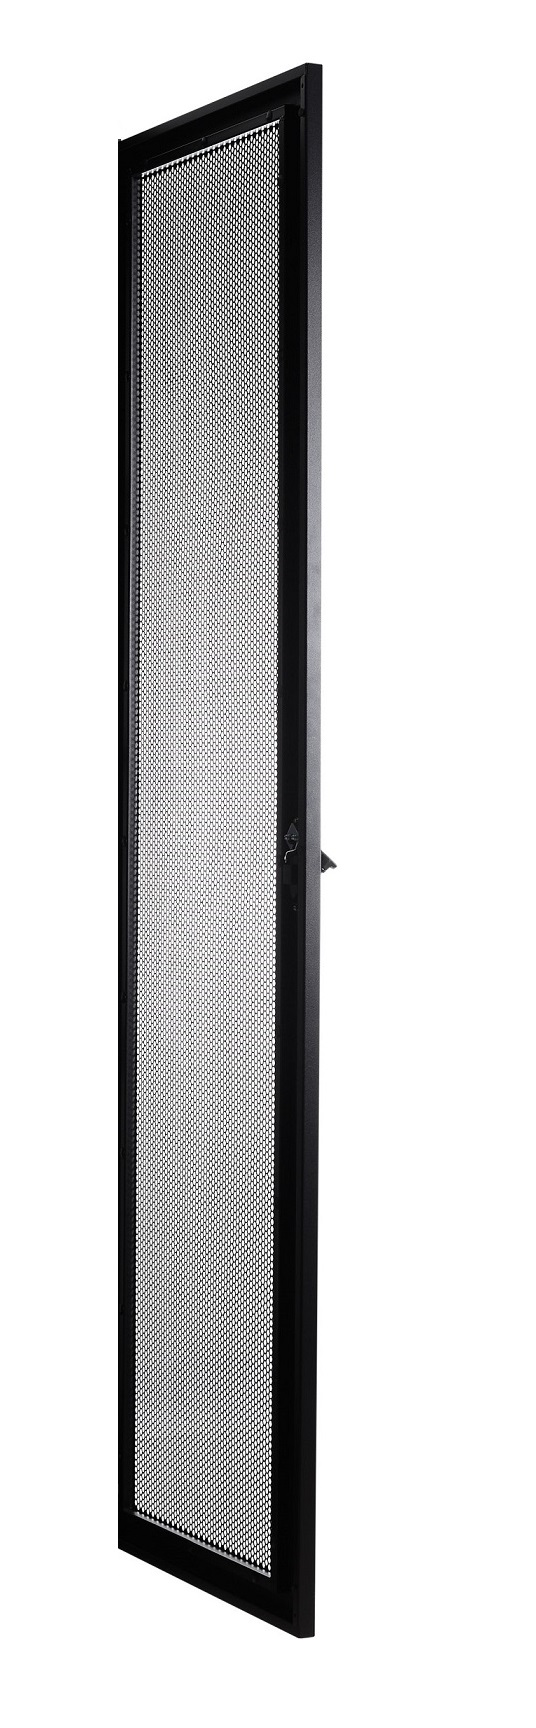 DigitMX NETPRO NP-CDP32U 19'' Fully Perforated Front Door for 32U cabinets